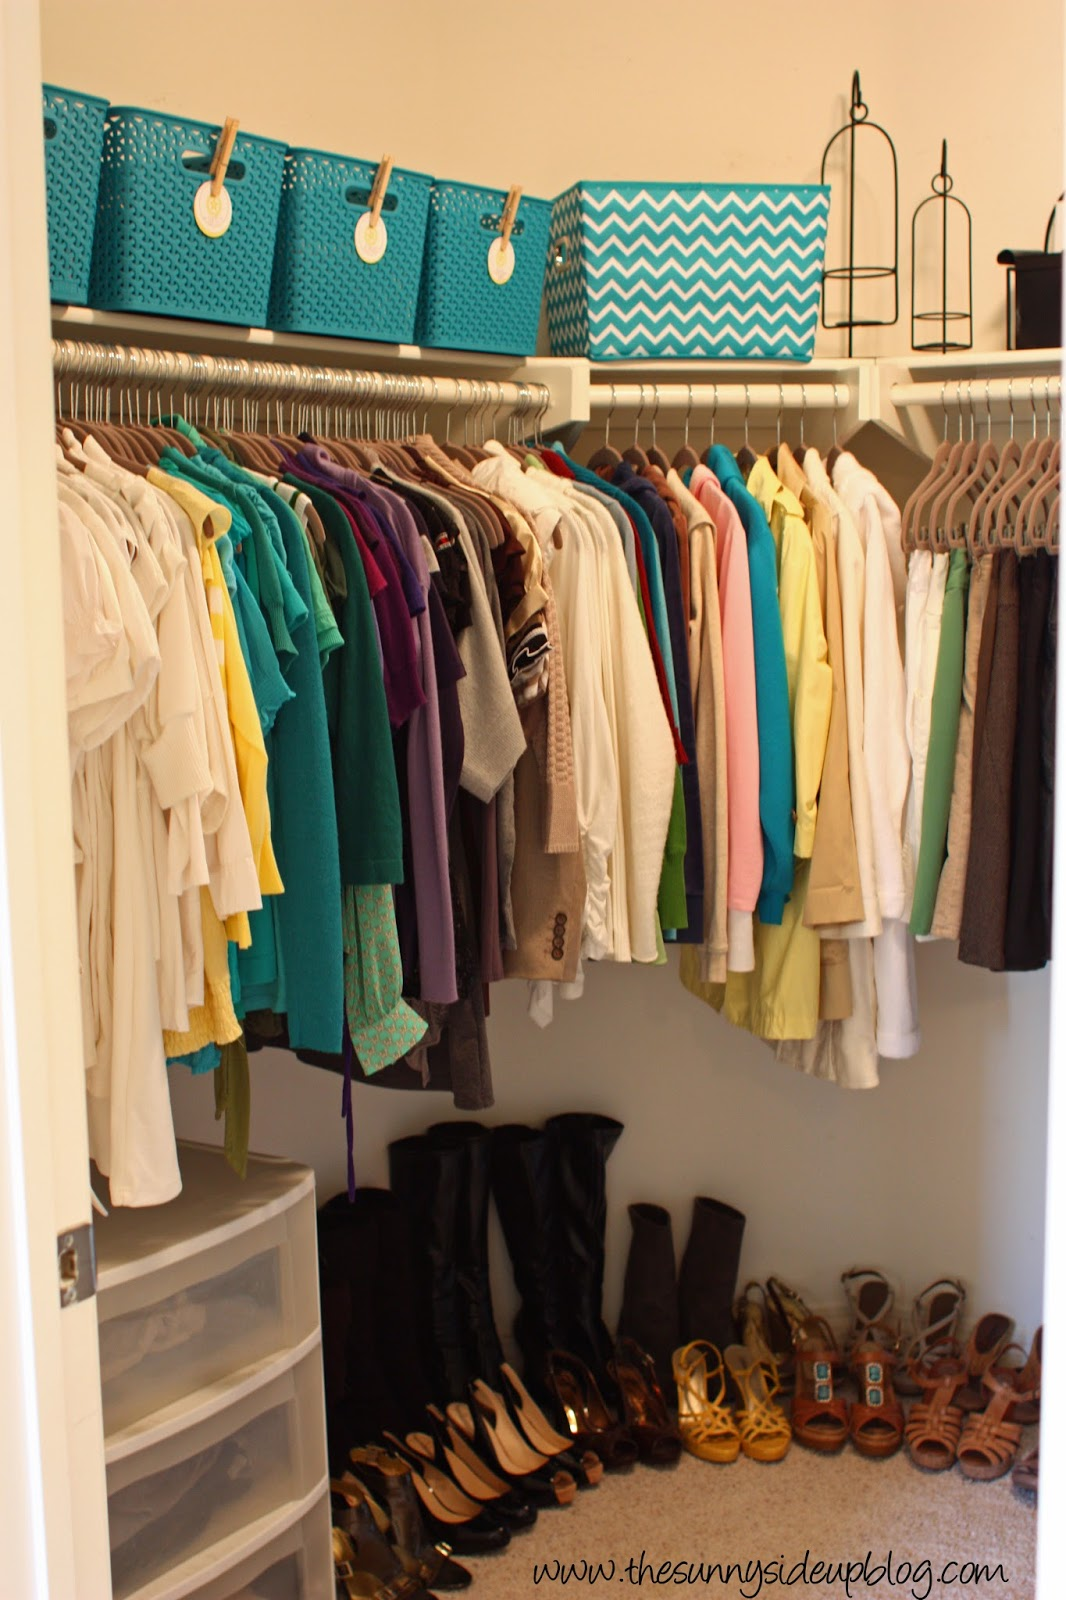 Organize A 6 Month Capsule Wardrobe For Fall And Winter: Back To School Organization